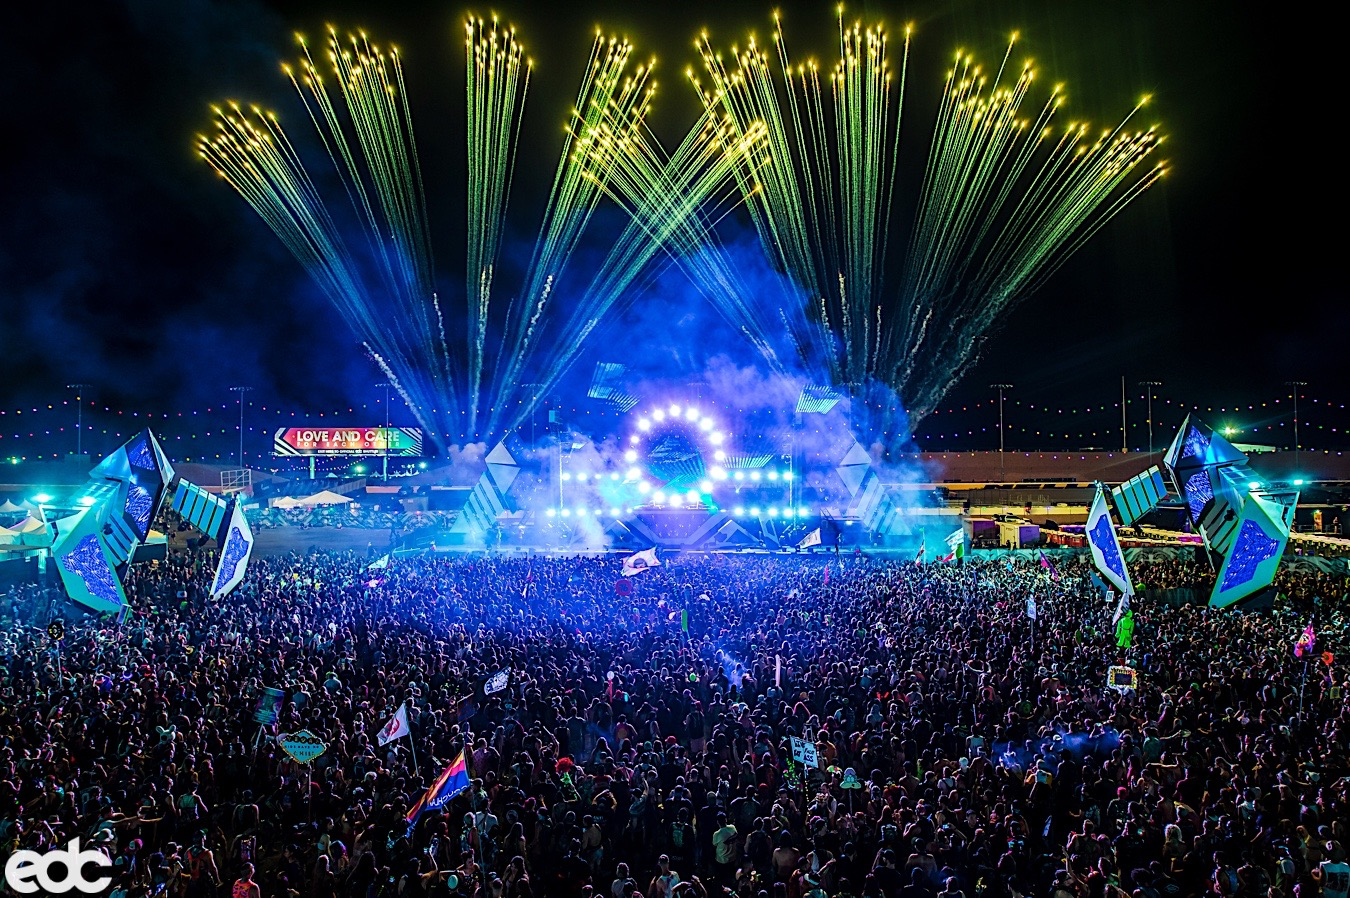 Basspod - Photo Credit: Insomniac Events